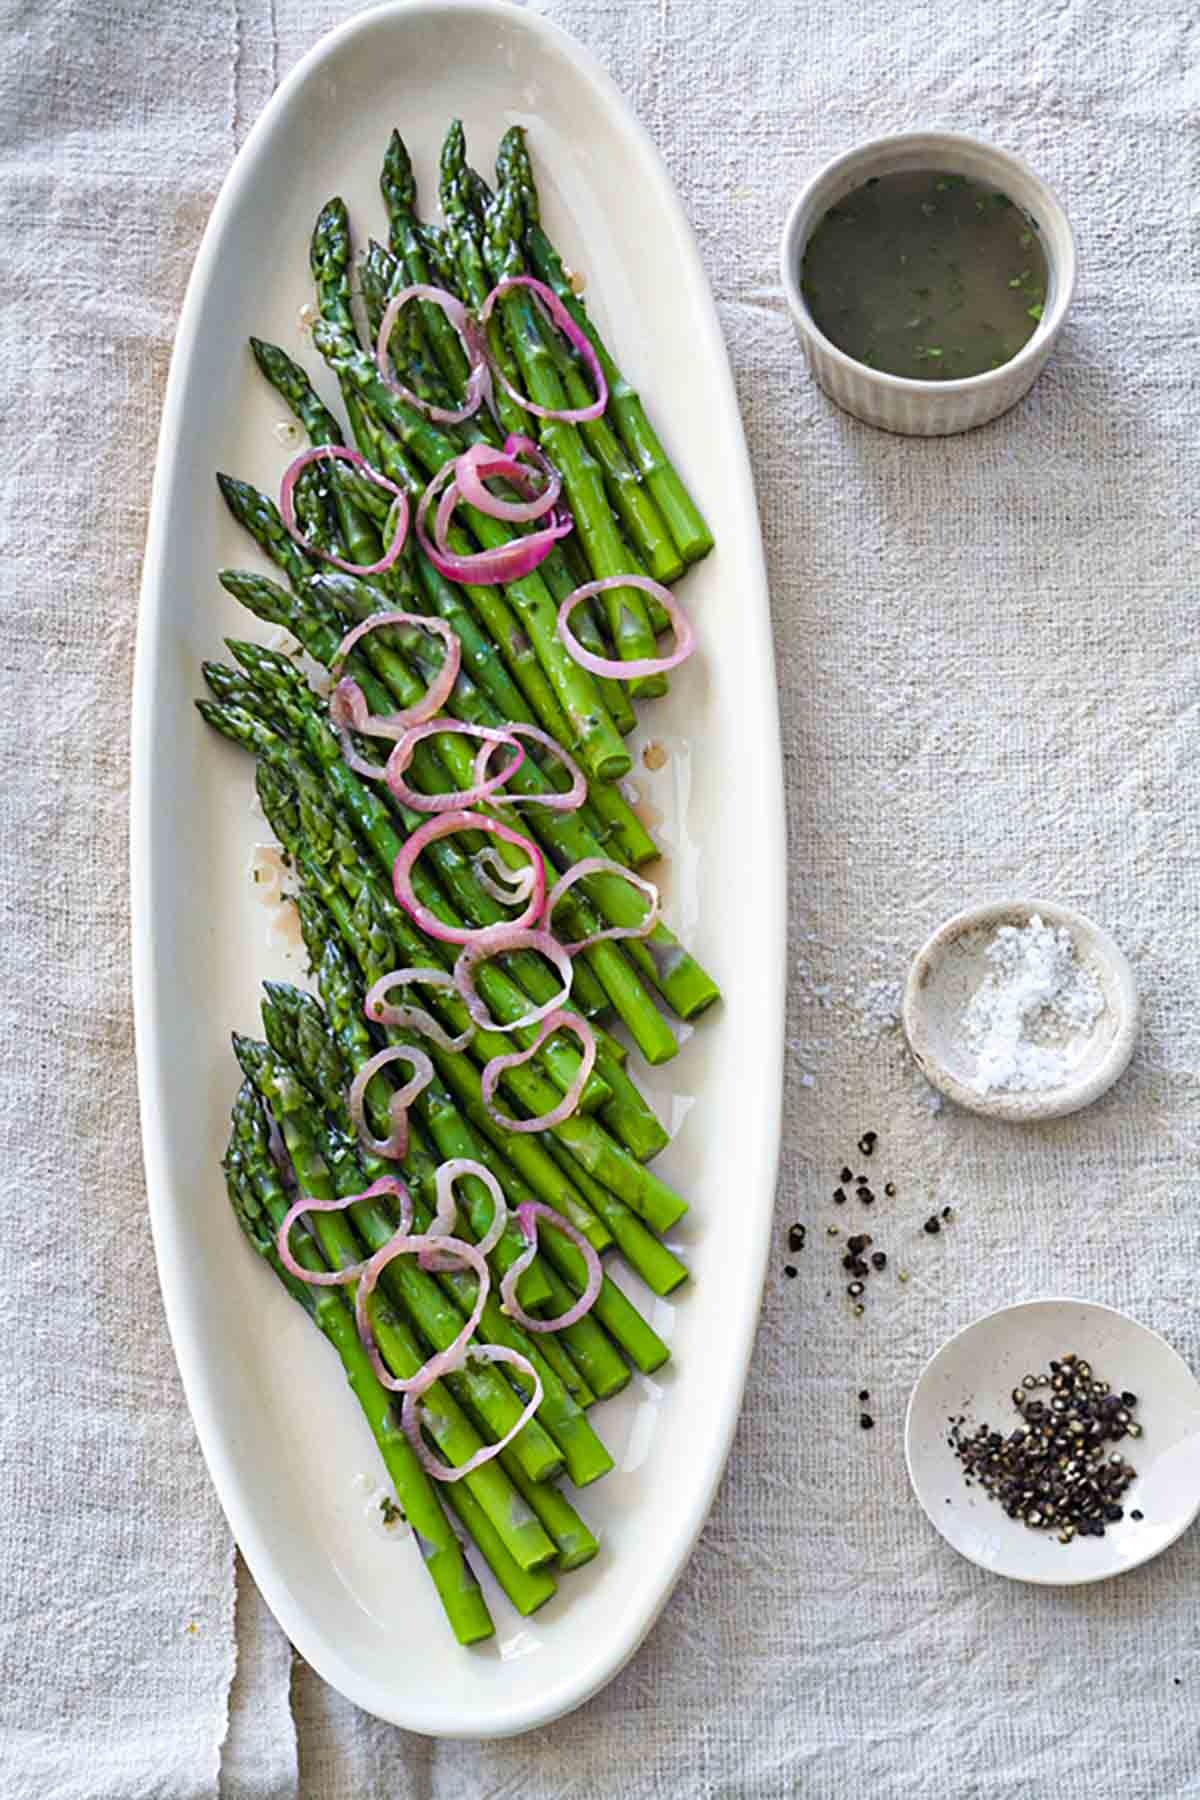 A white oval platter filled with asparagus with raspberry-shallot vinaigrette, and pickled shallots scattered on top.